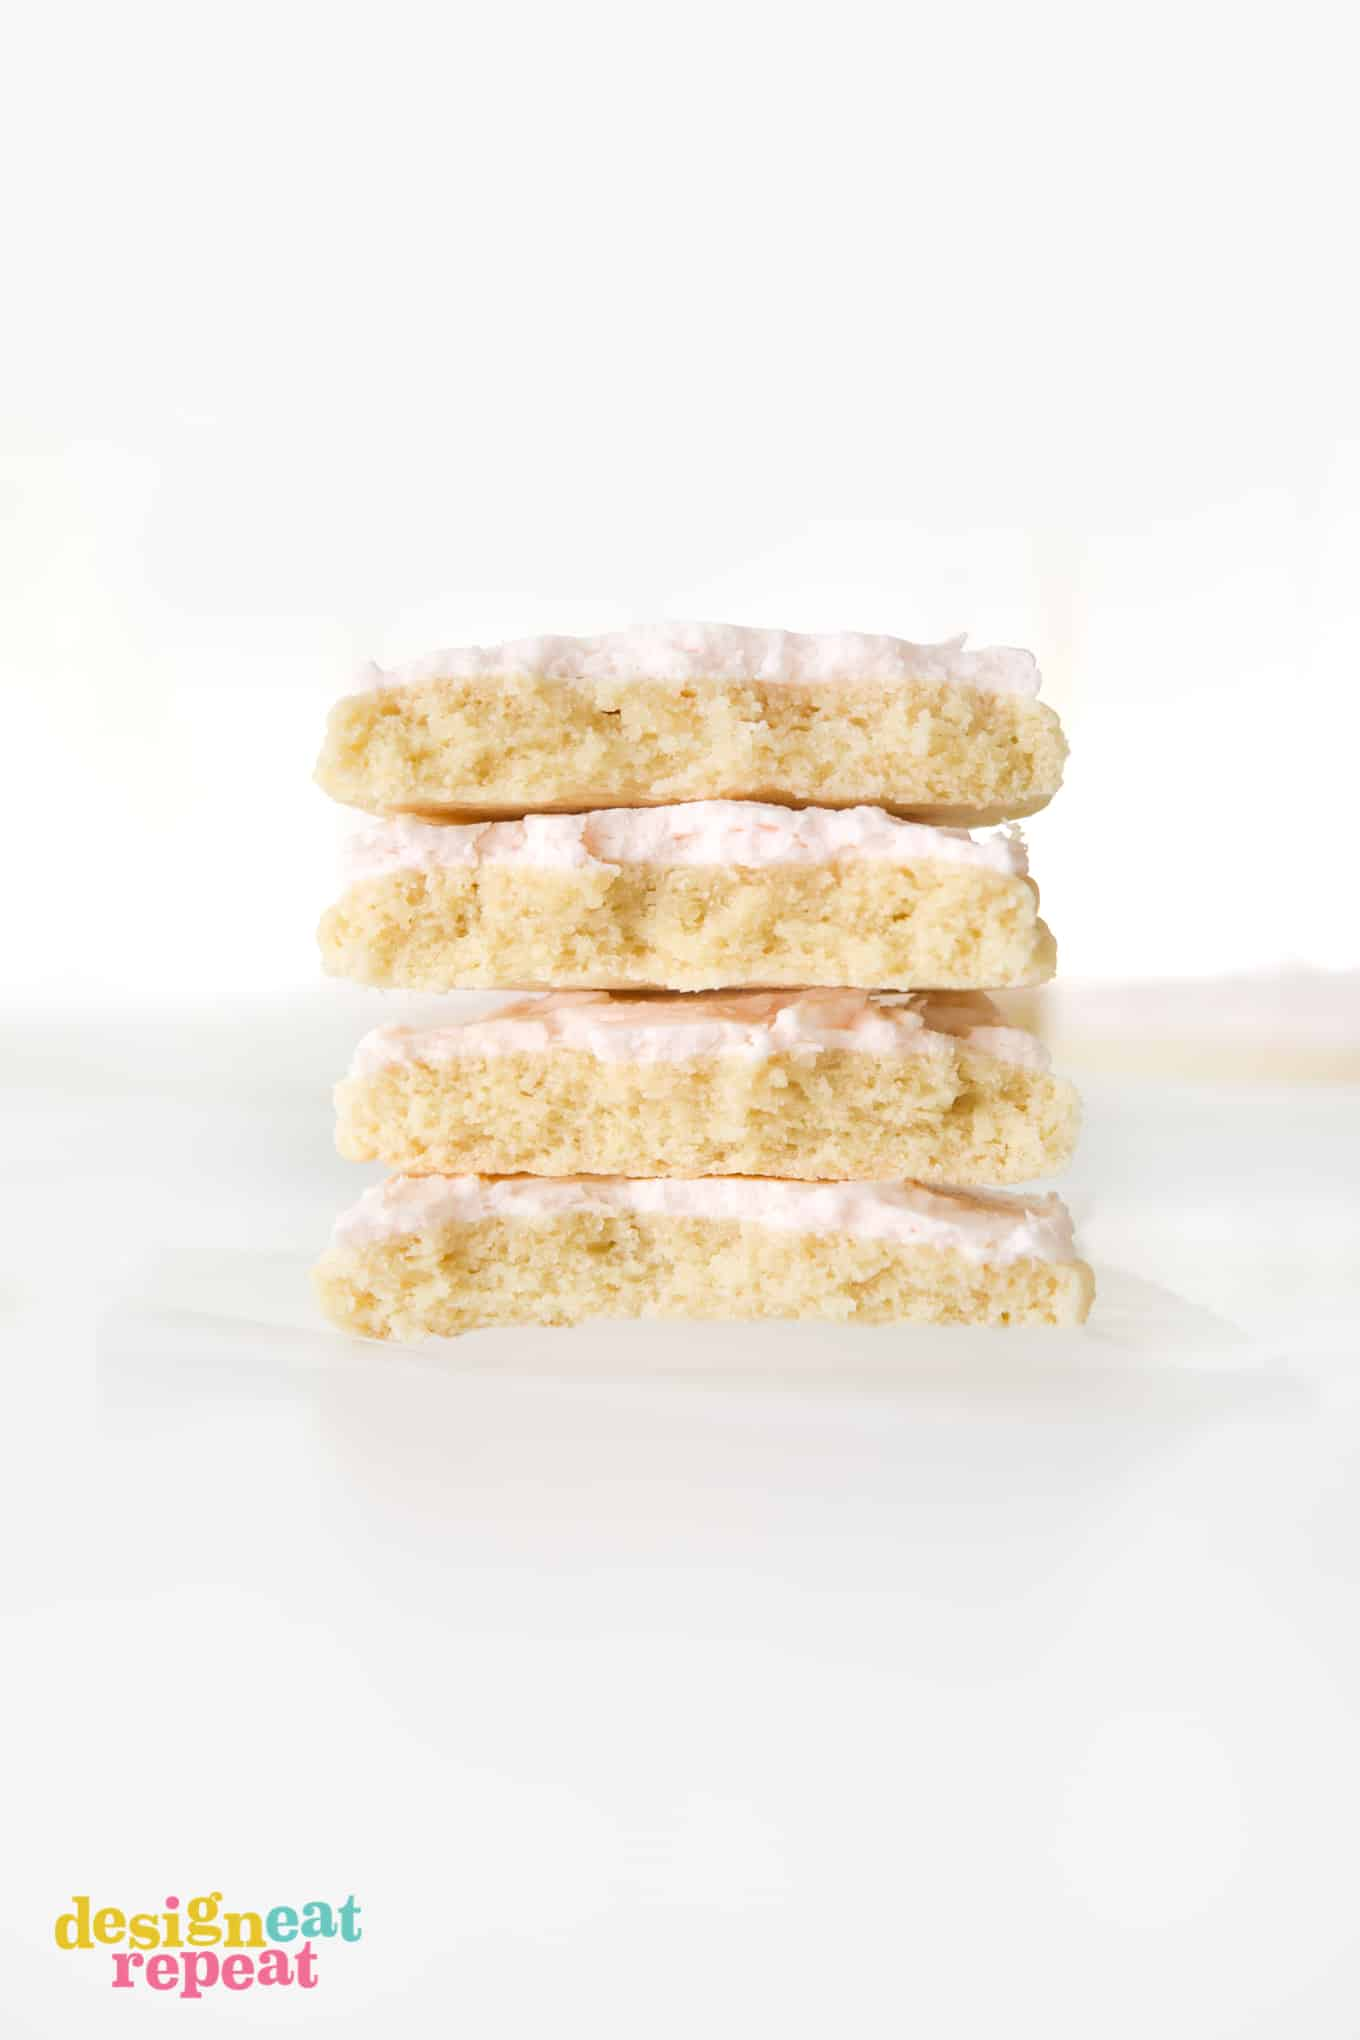 Stack of four large sugar cookies with pink frosting, cut in half.